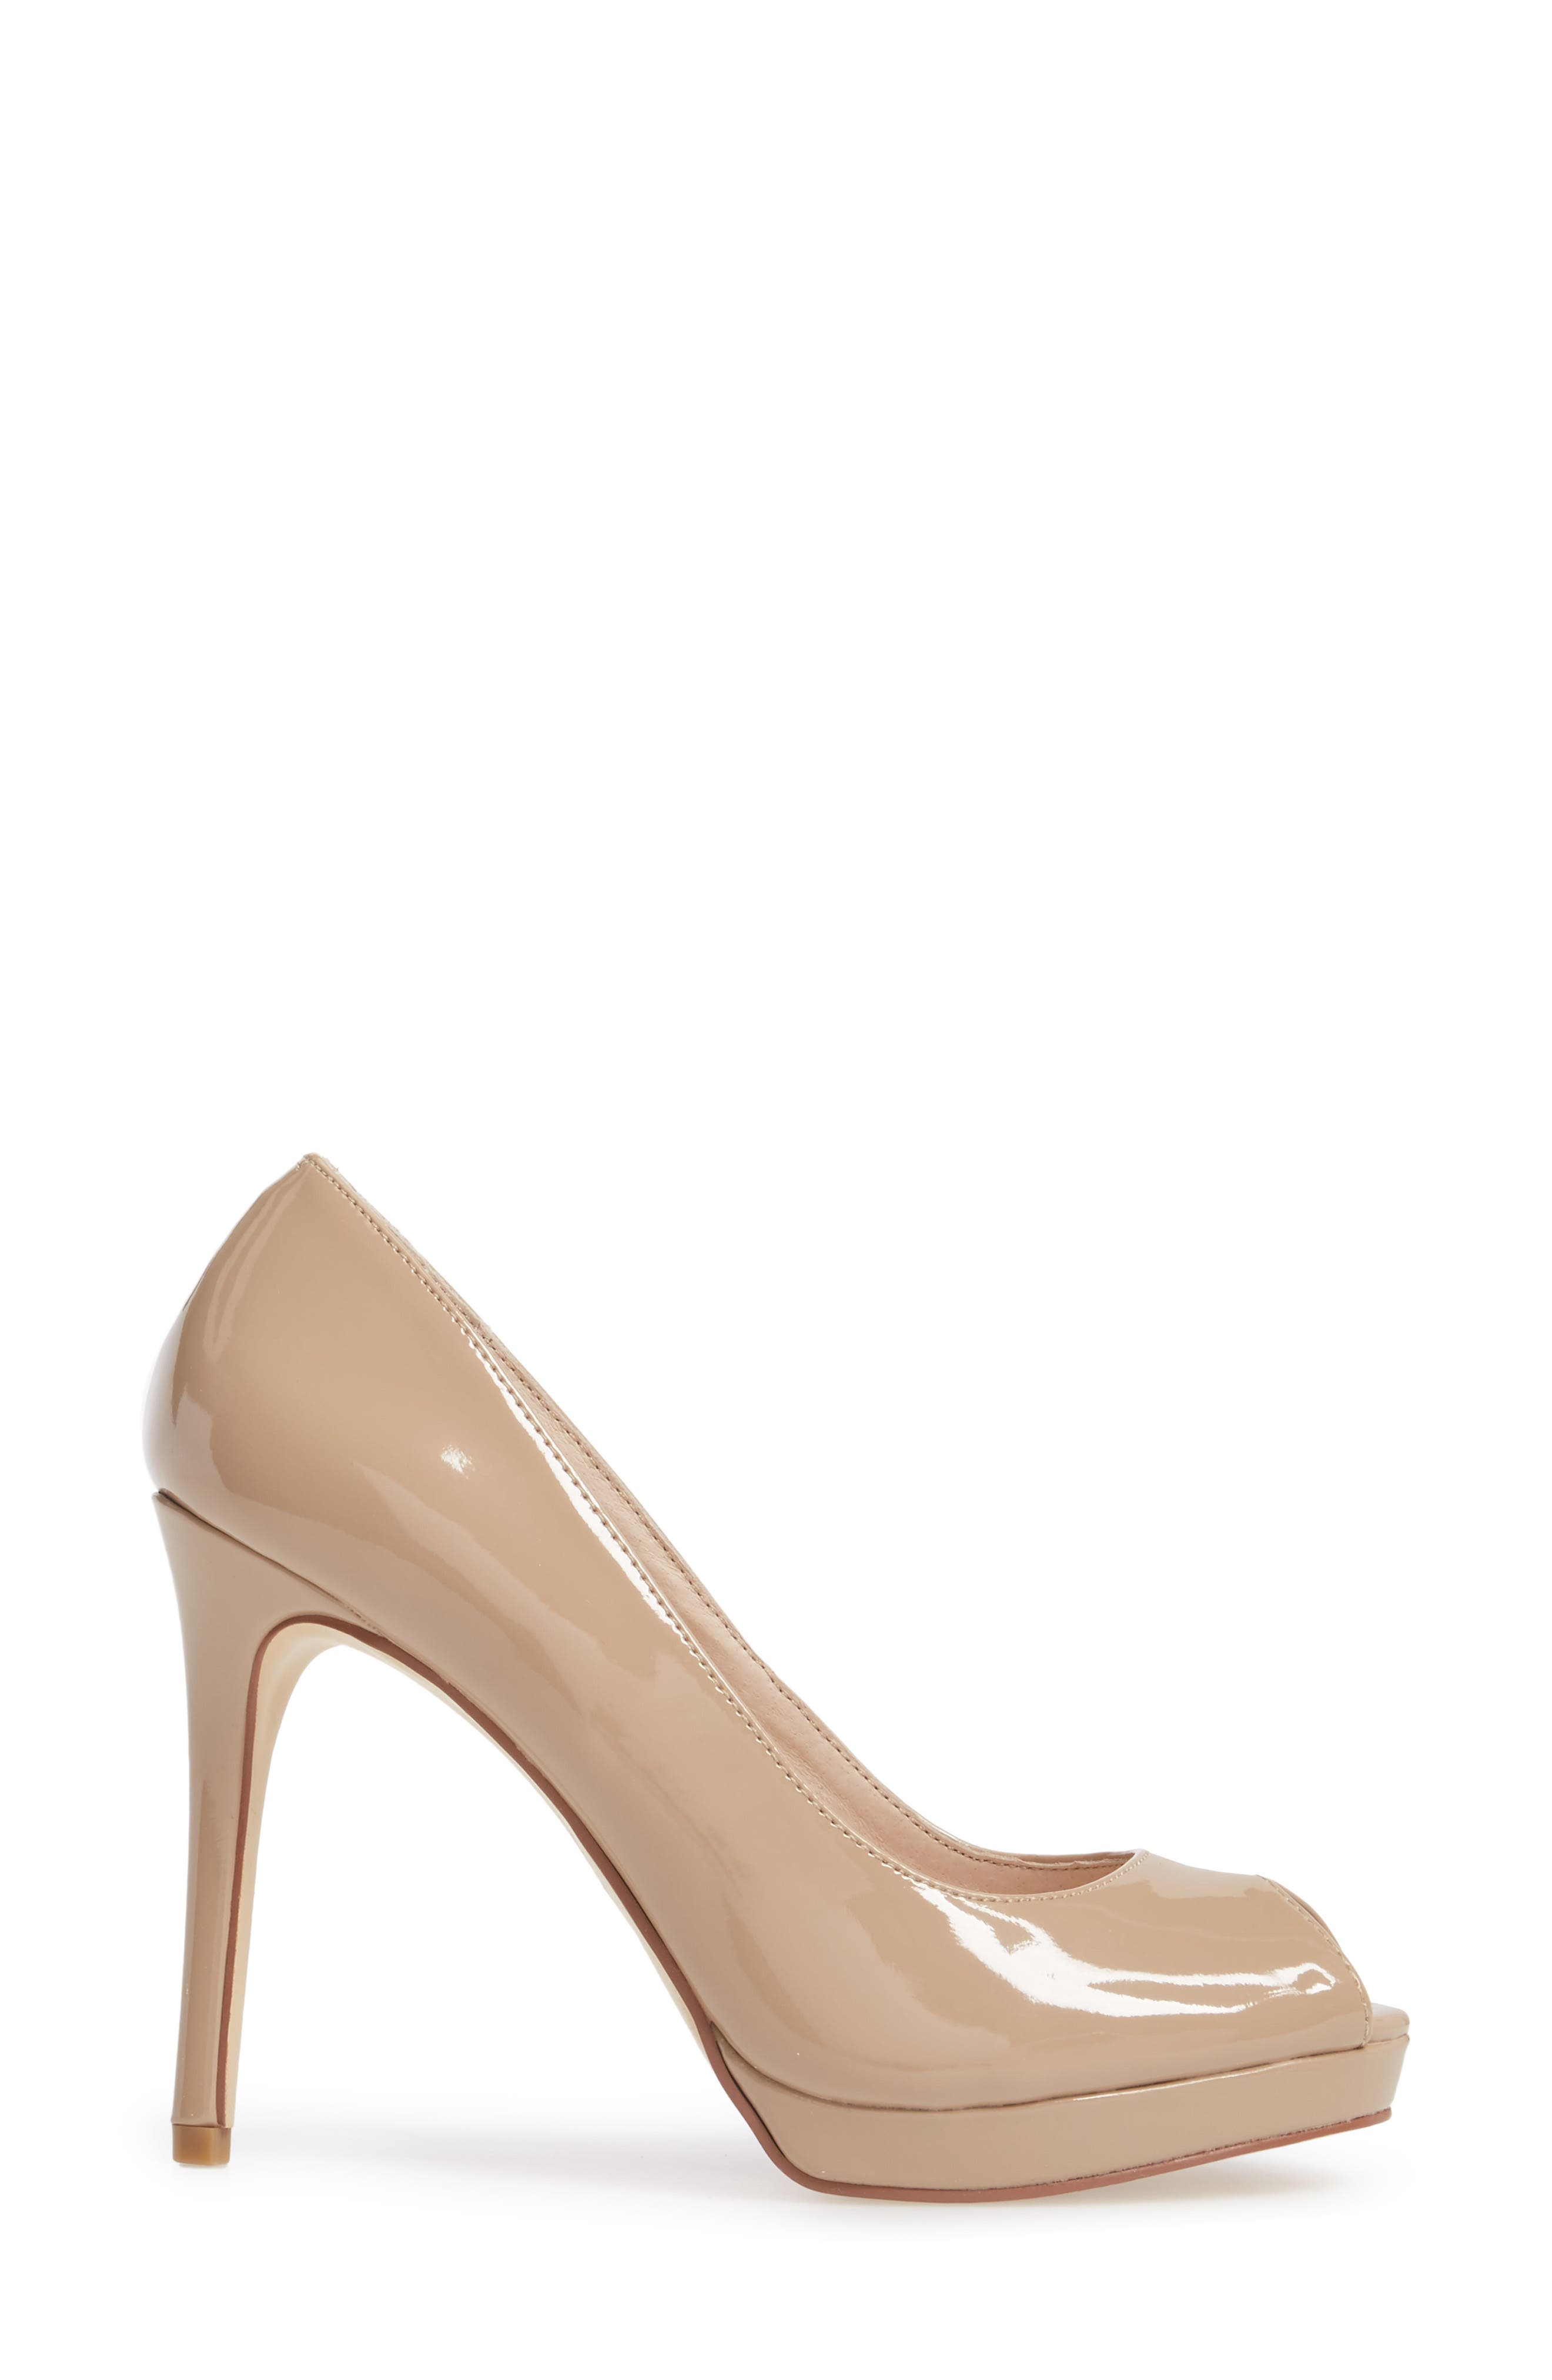 Fia Peep Toe Pump,                             Alternate thumbnail 3, color,                             Nude Patent